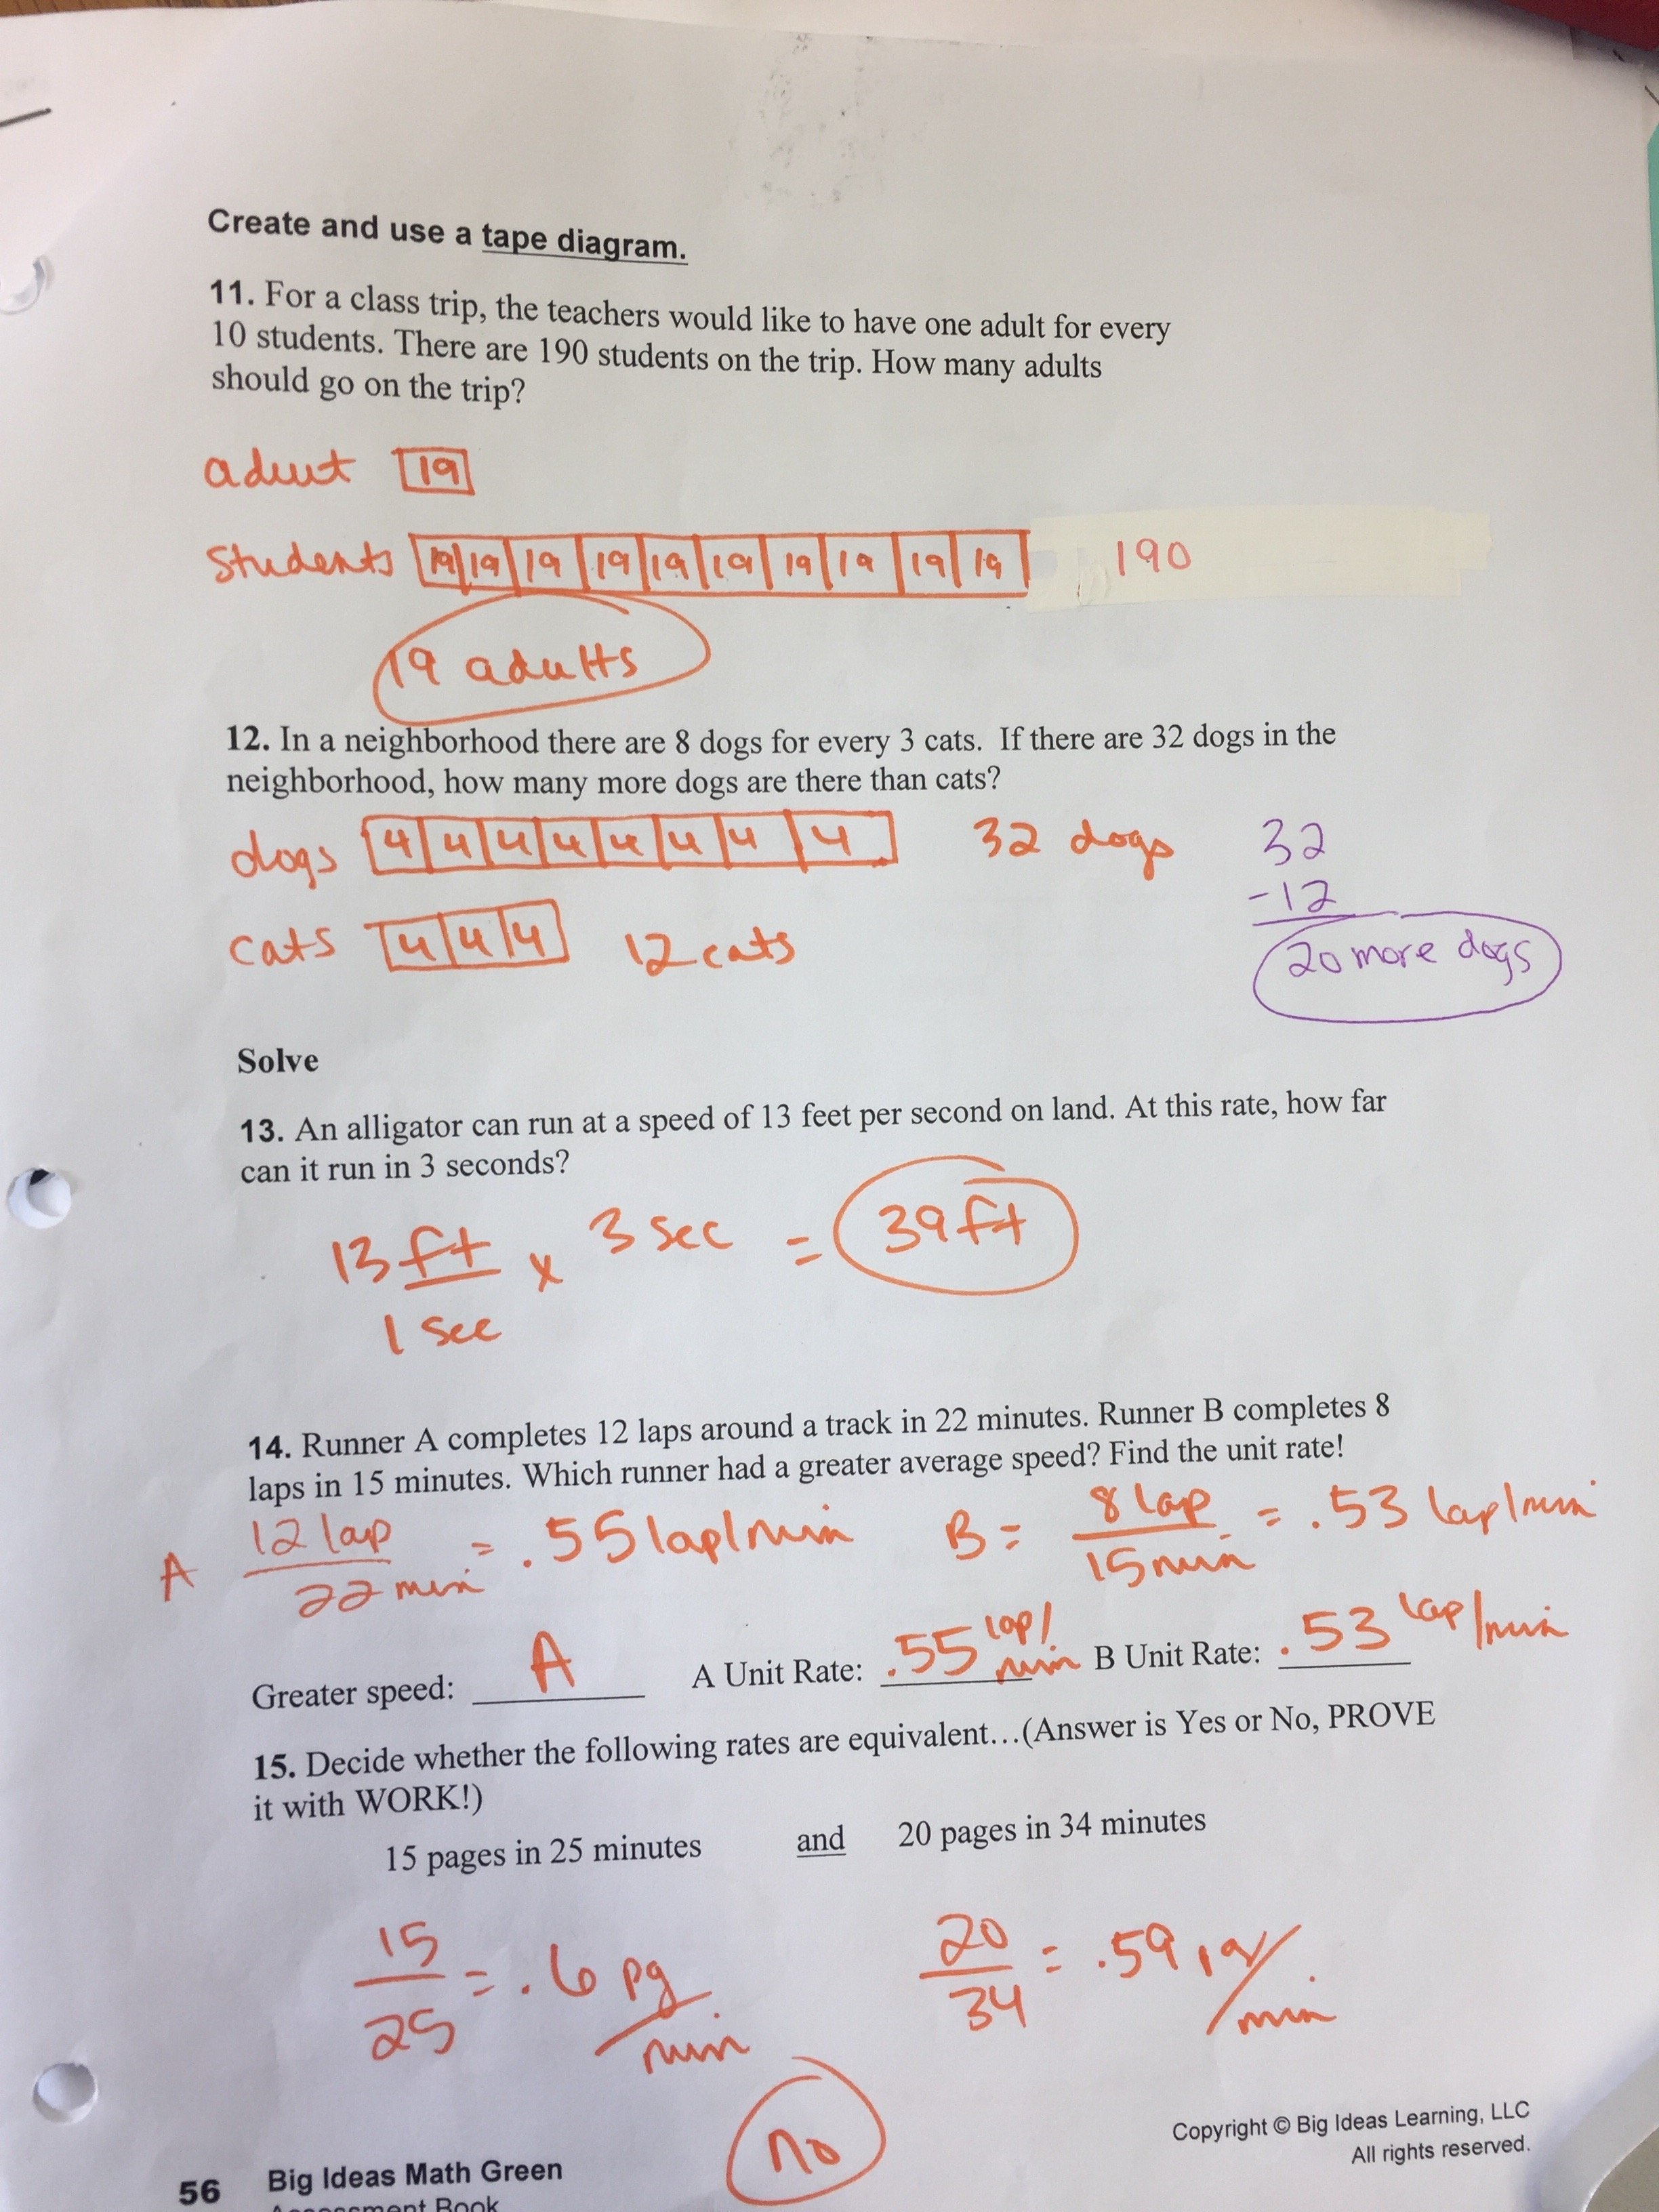 10 Perfect Big Ideas Math Red Answer Key mrs gillespie 6th grade math page 2 4